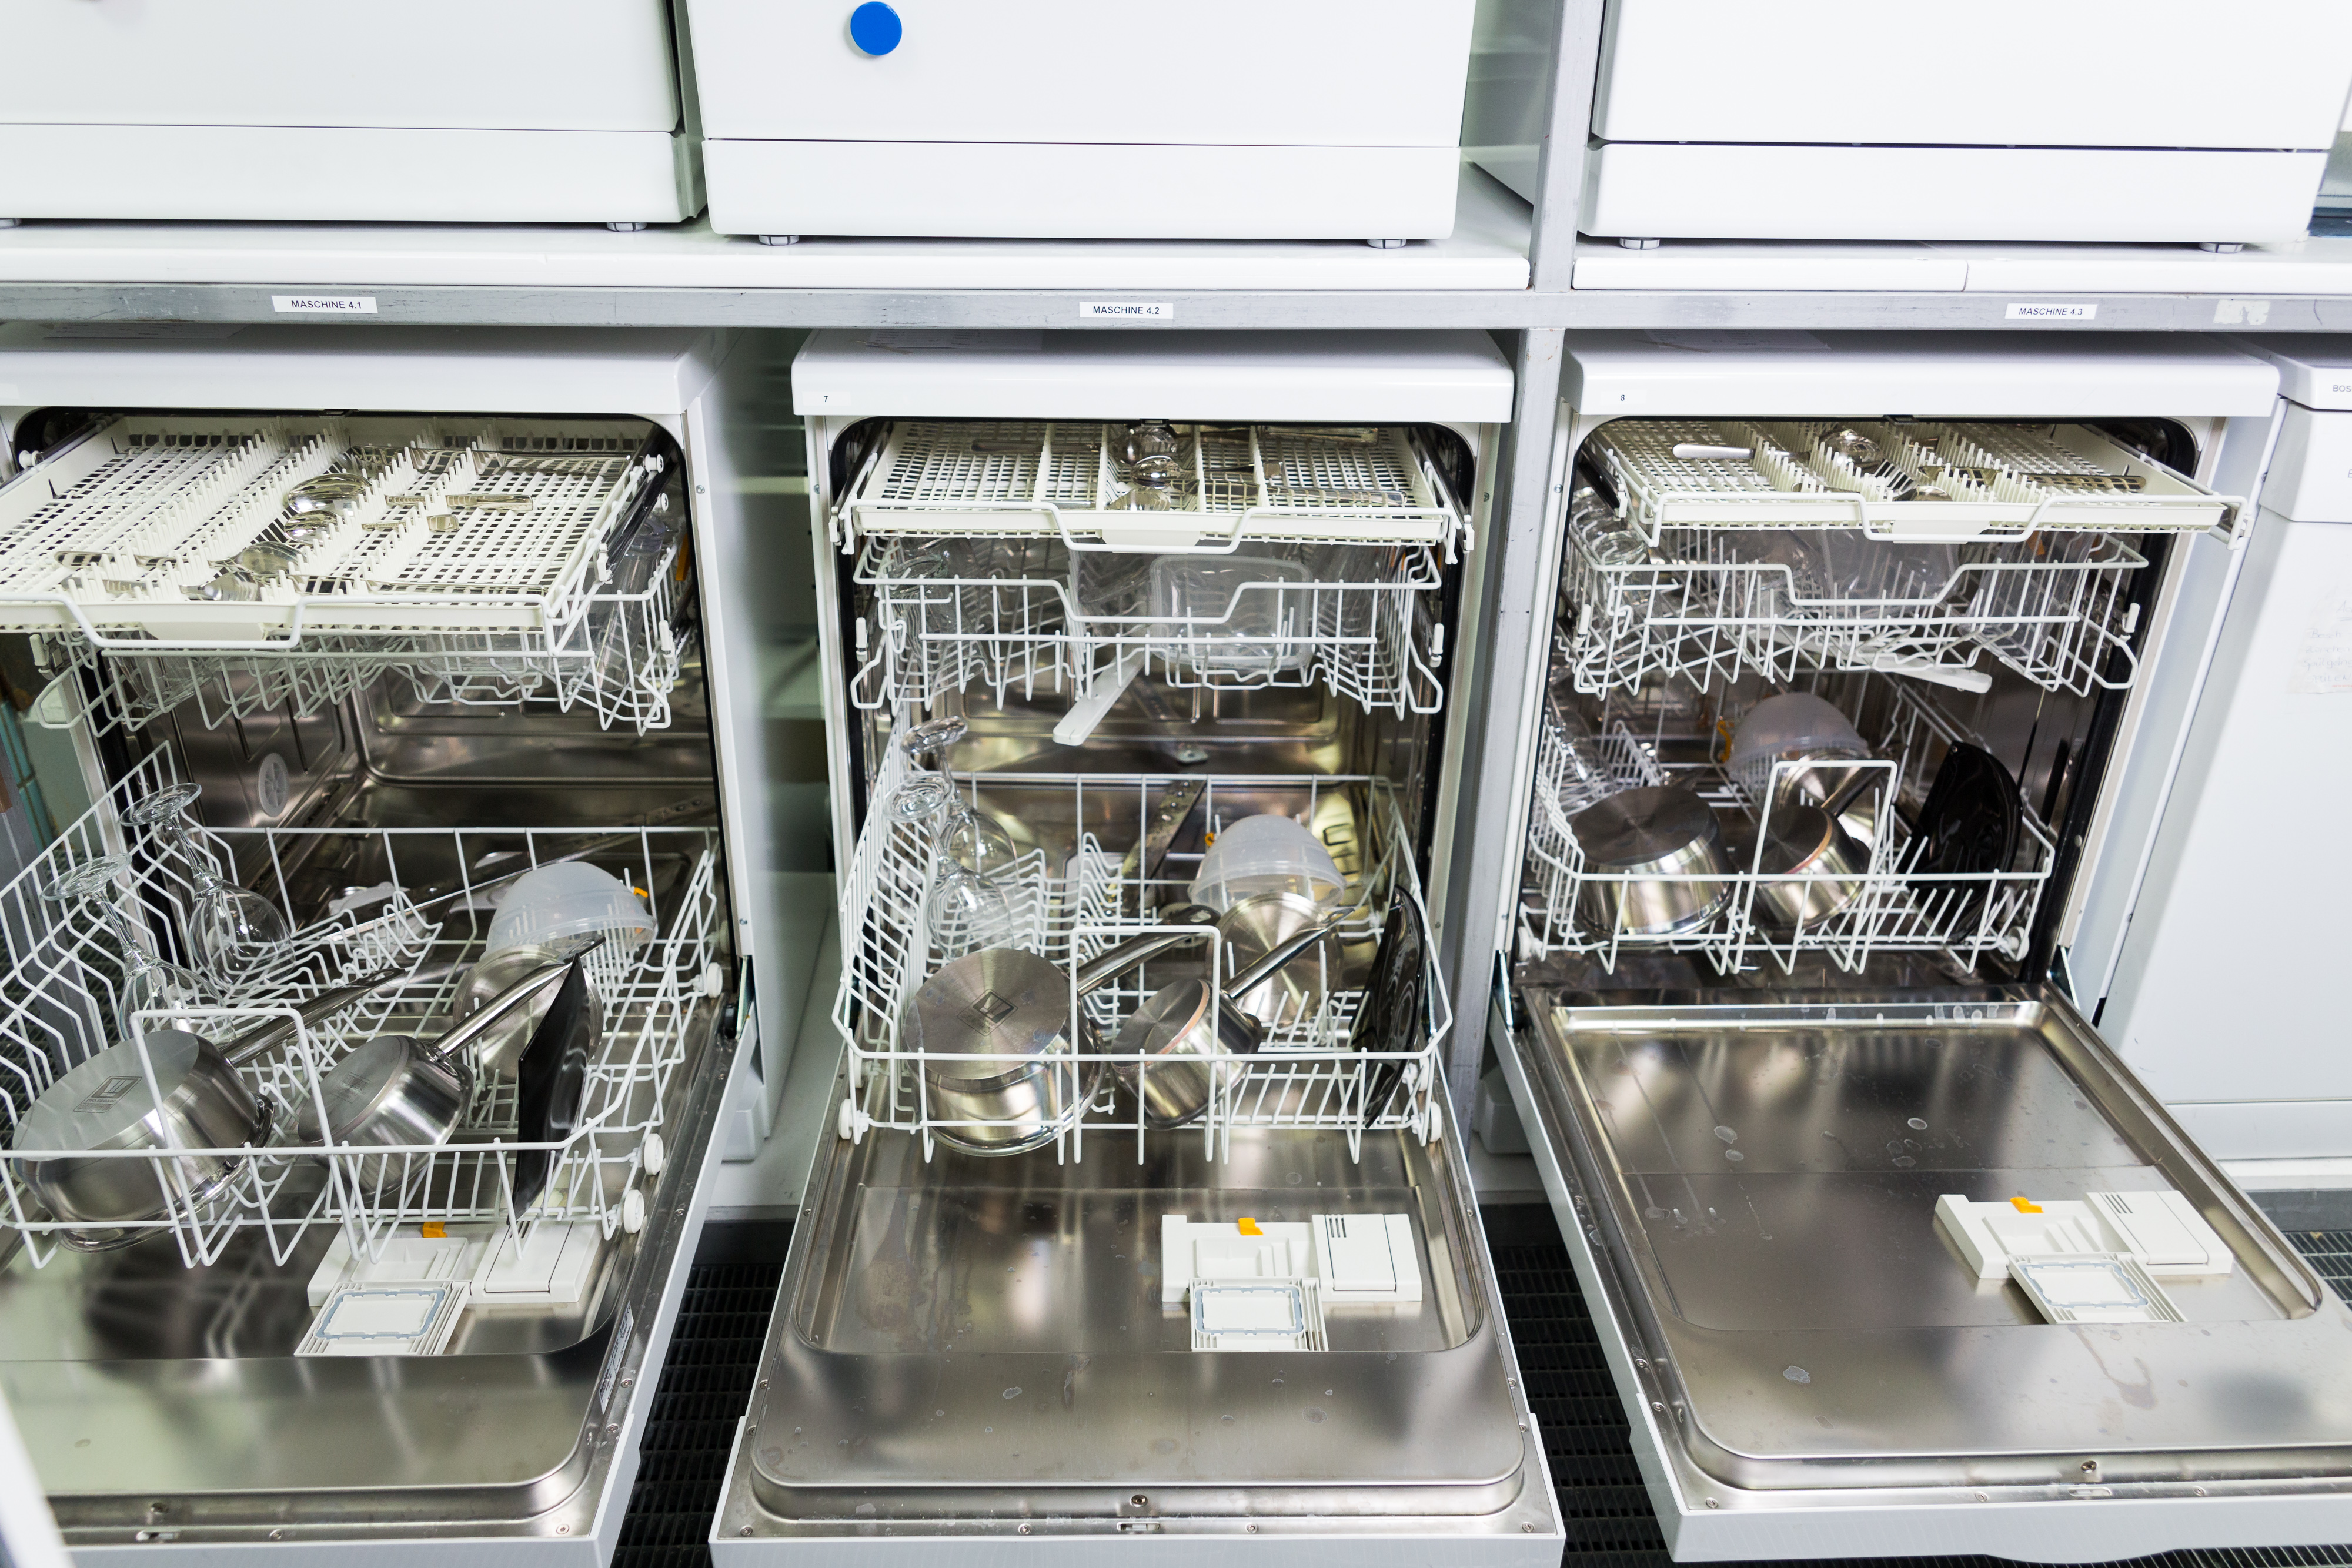 Taunusstein | 23 October 2017 Test/Survey Dishwasher Tablets for TESTFAKTA at SGS Fresenius Lab in Taunusstein, Germany. Here: Glasses and pots in a dishwasher machine. photo © peter-juelich.com